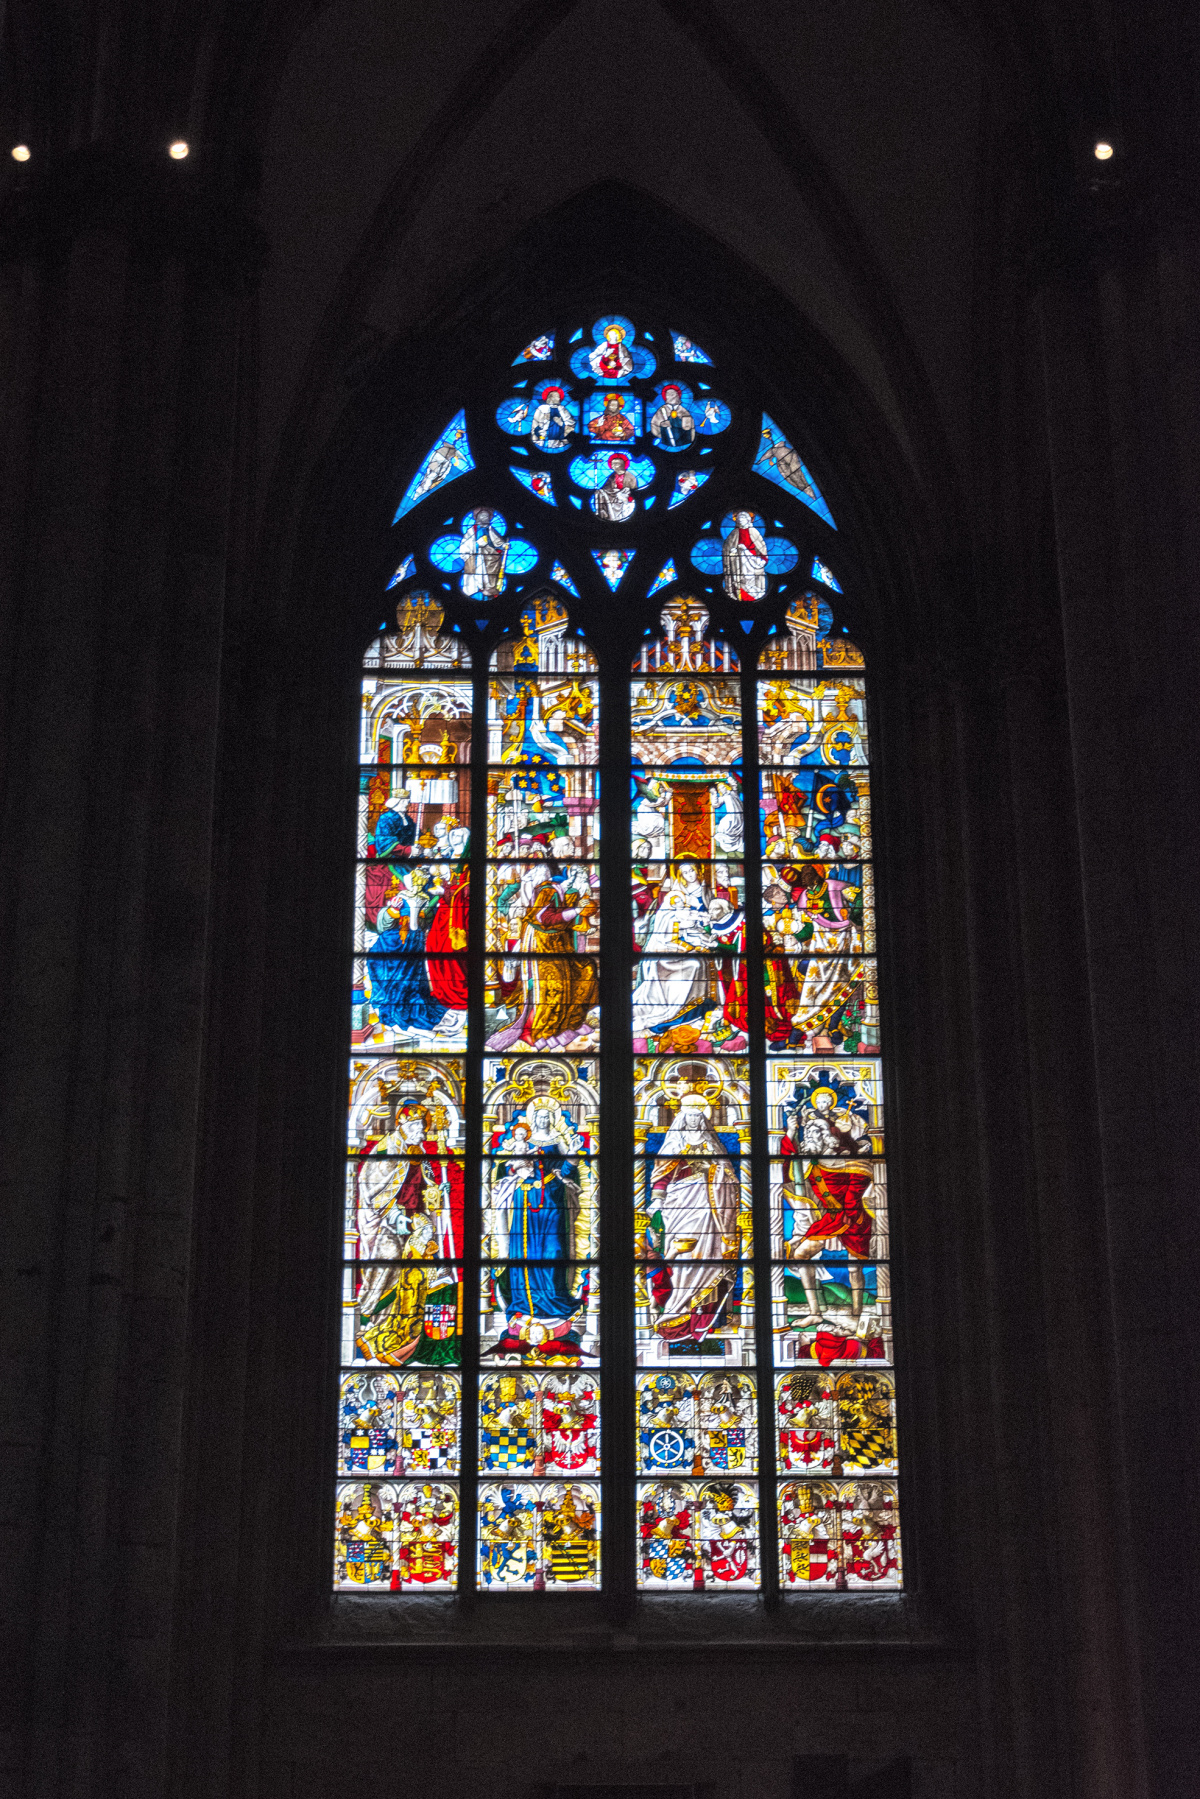 Stained Glass in the Kölner Dom